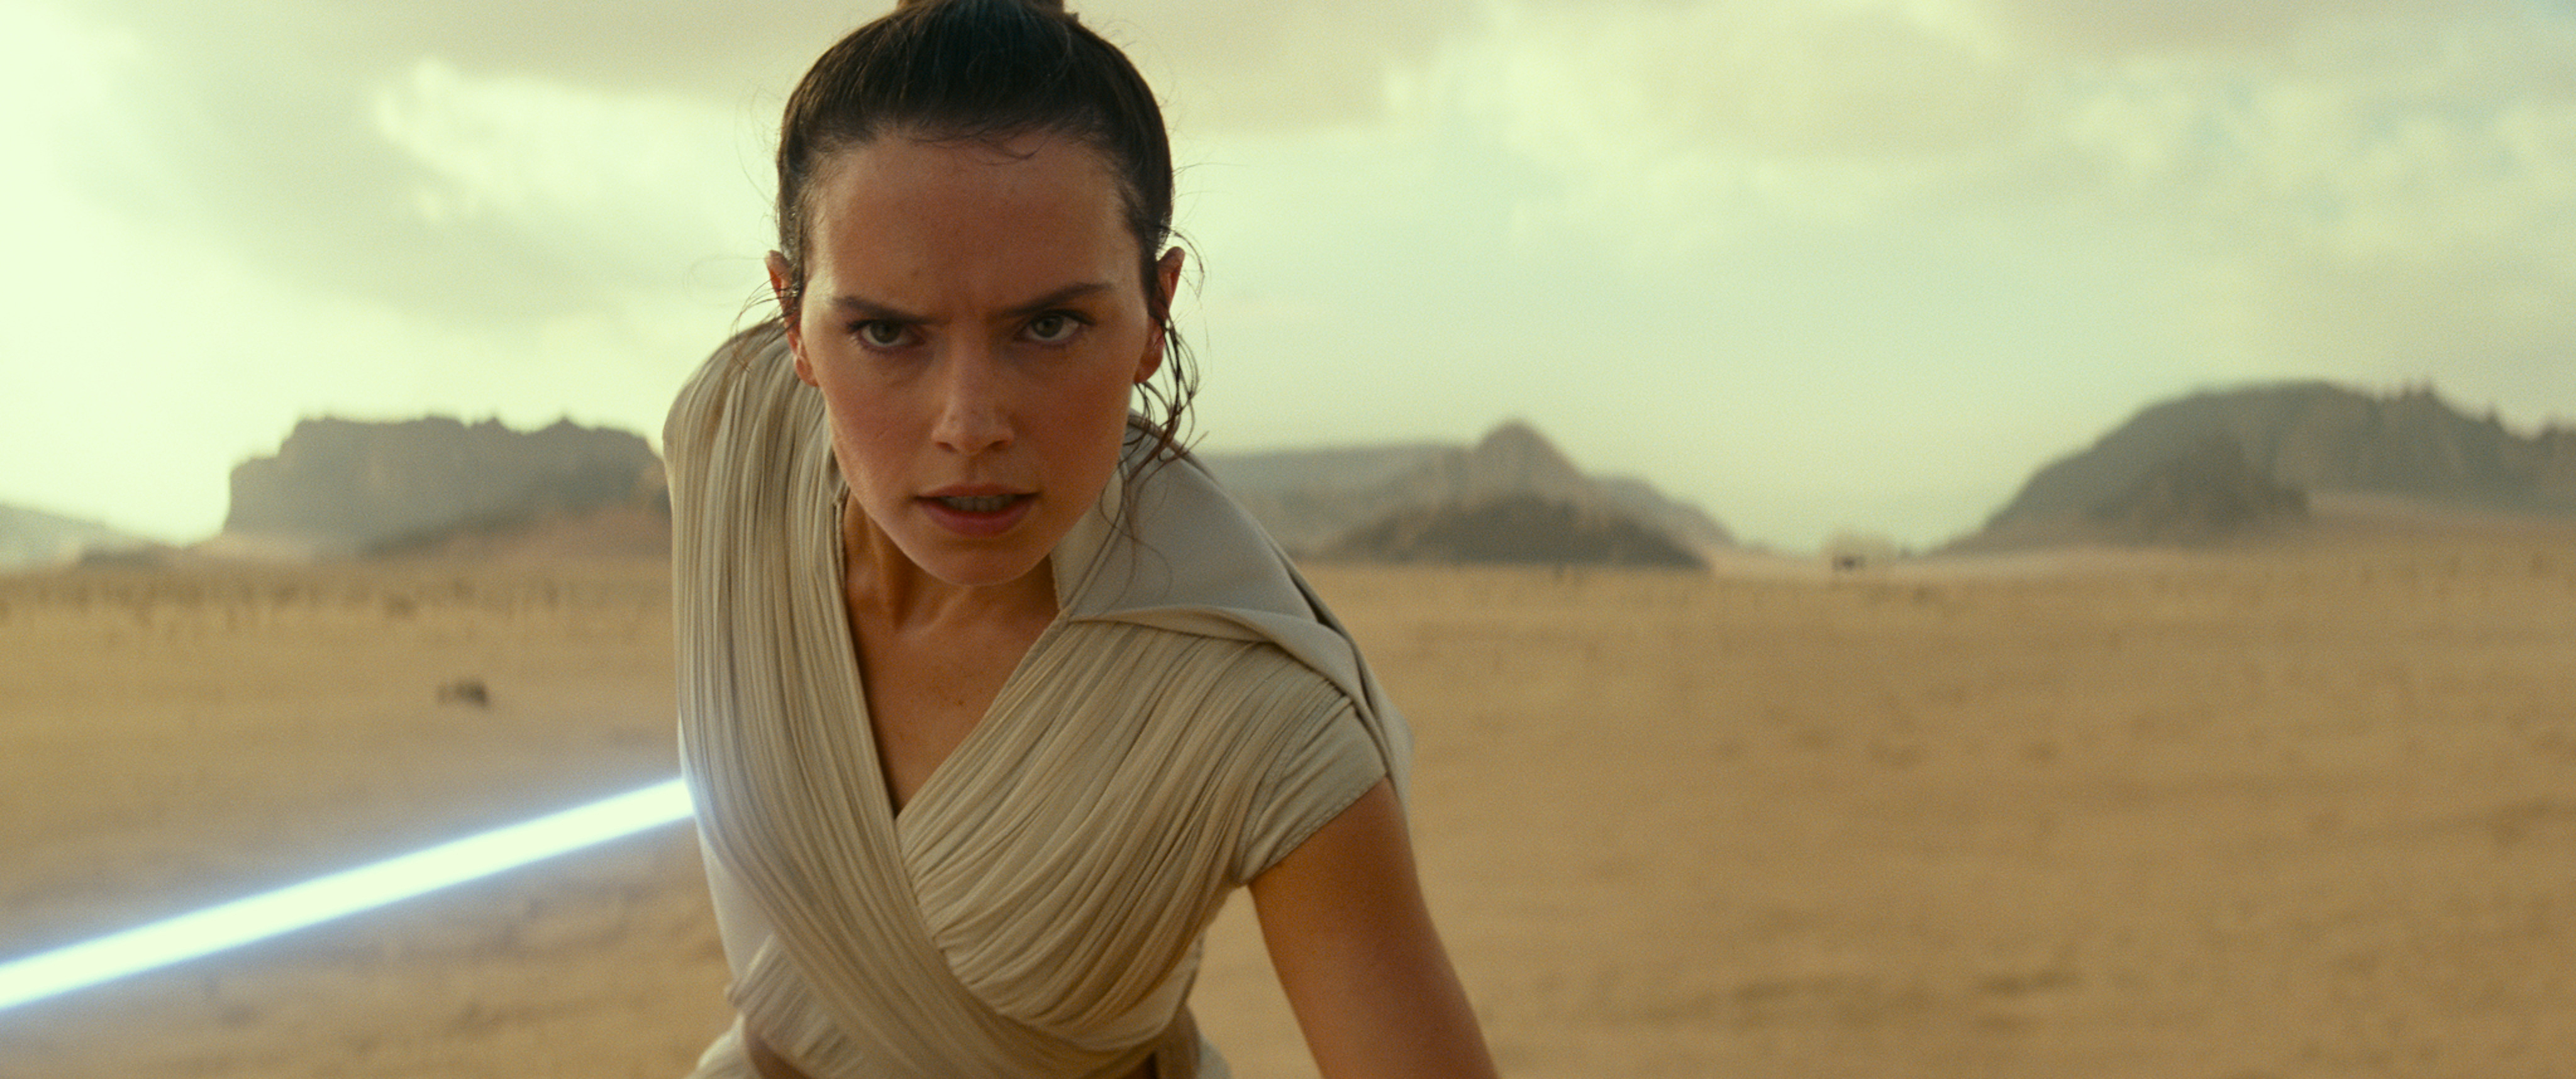 star-wars-the-rise-of-skywalker-official-high-resolution-images-11